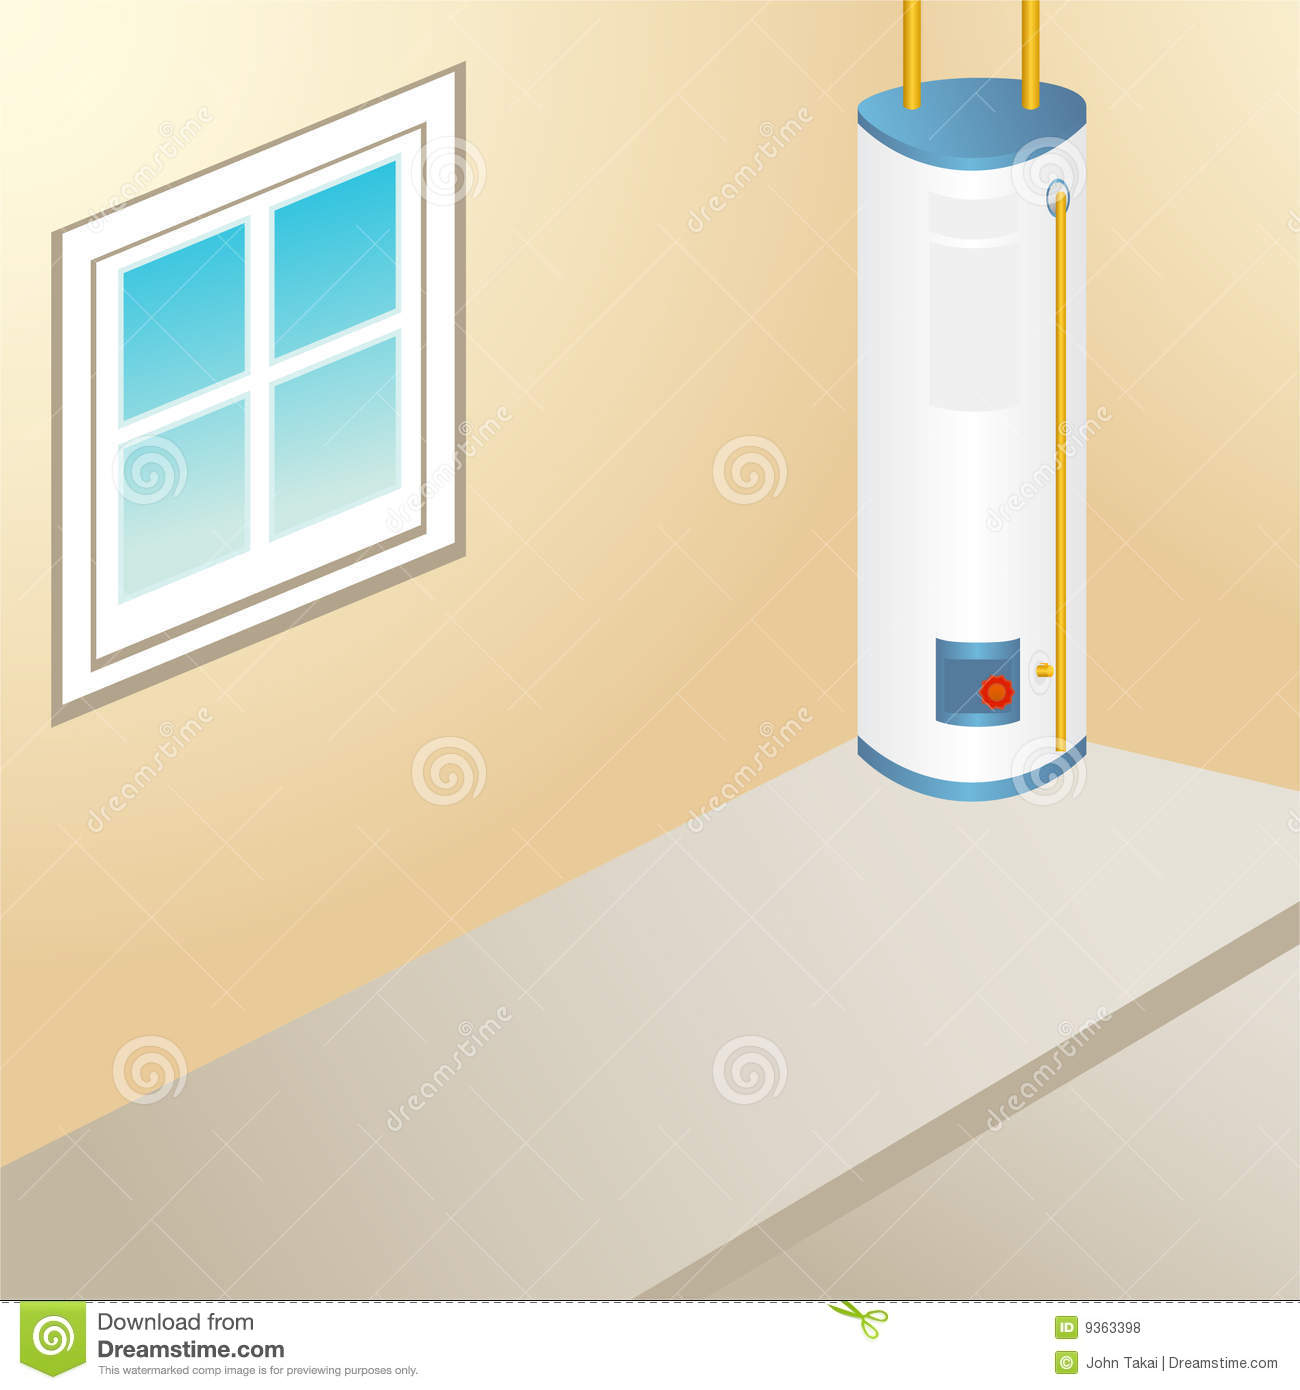 Outdoor Water Heater Royalty Free Stock Photos   Image  9363398